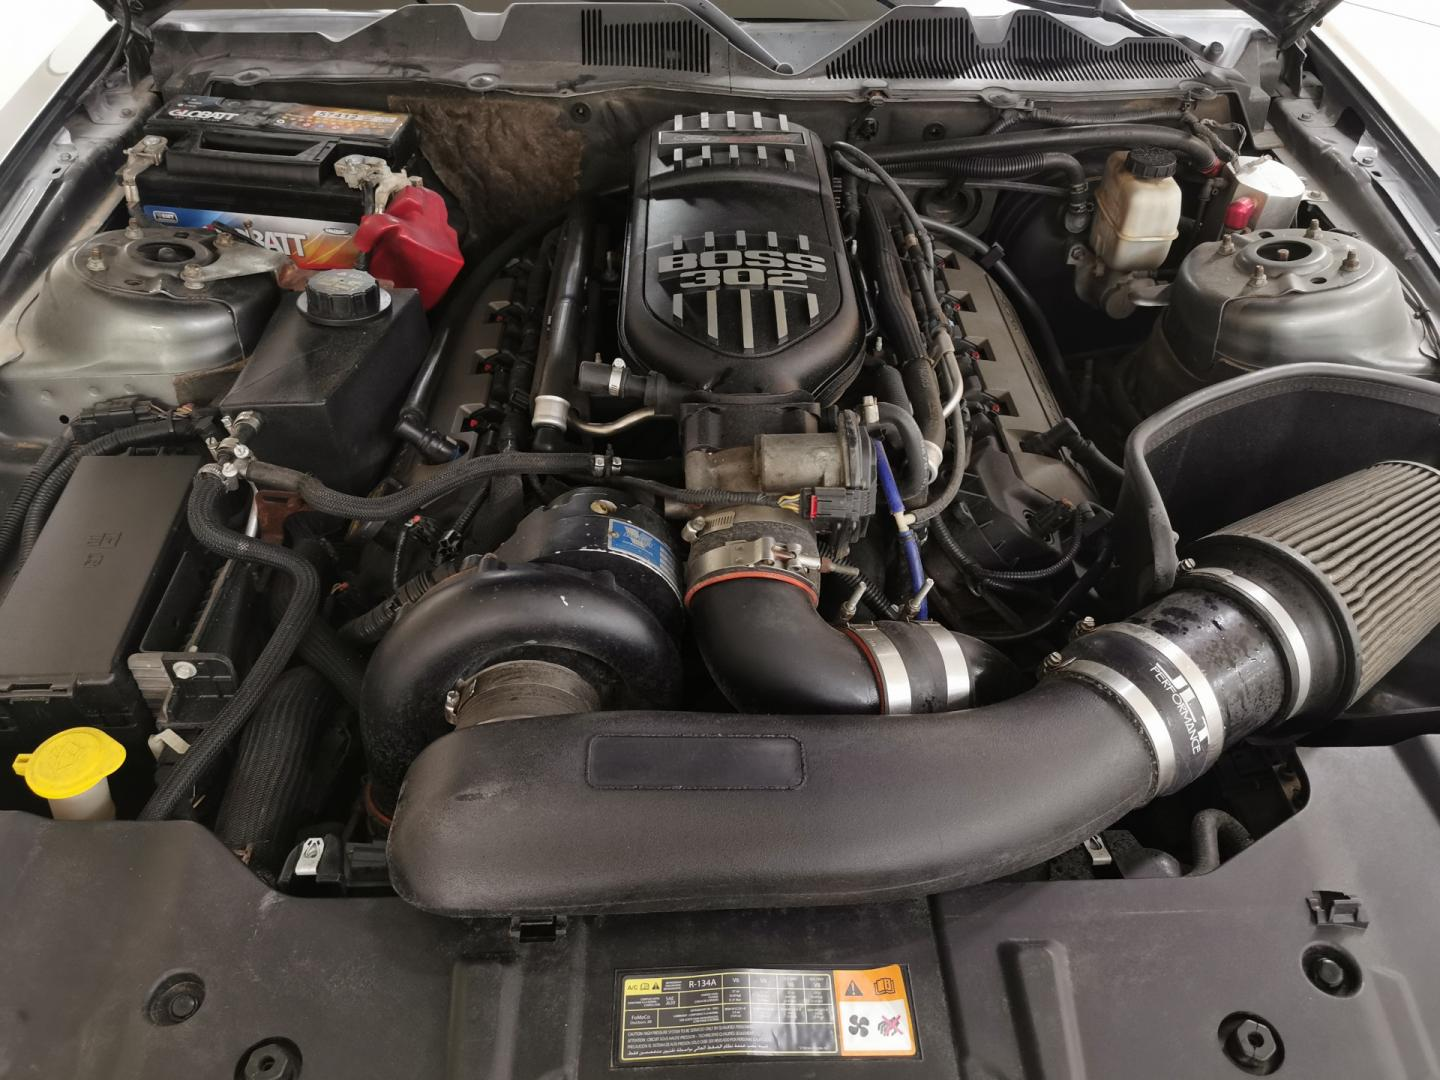 Ford Mustang Supercharger met 850 pk